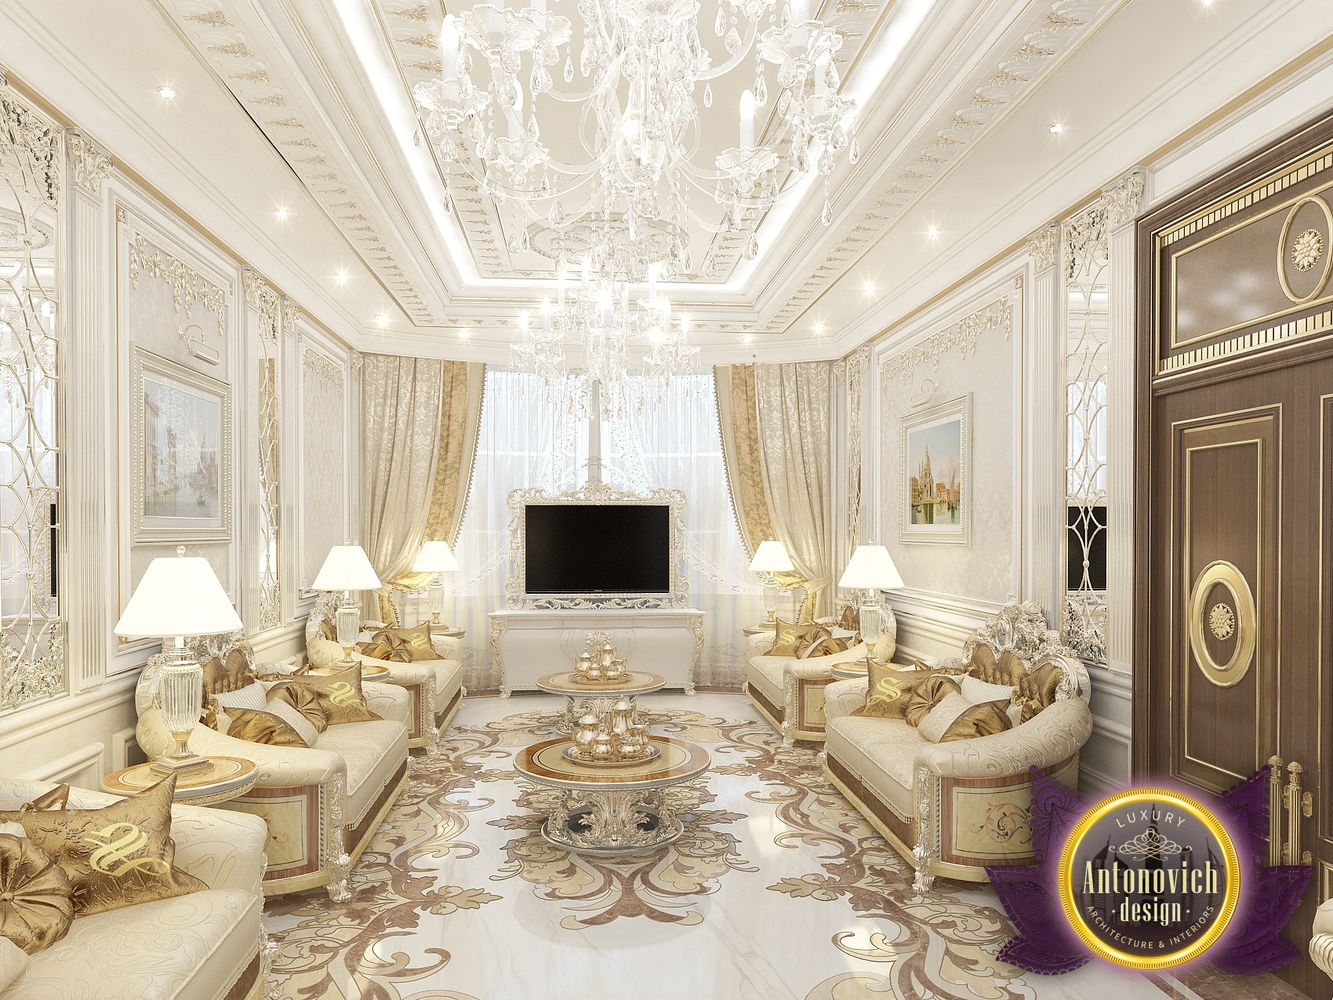 Luxury antonovich design uae living room interior design for Sitting room designs pictures